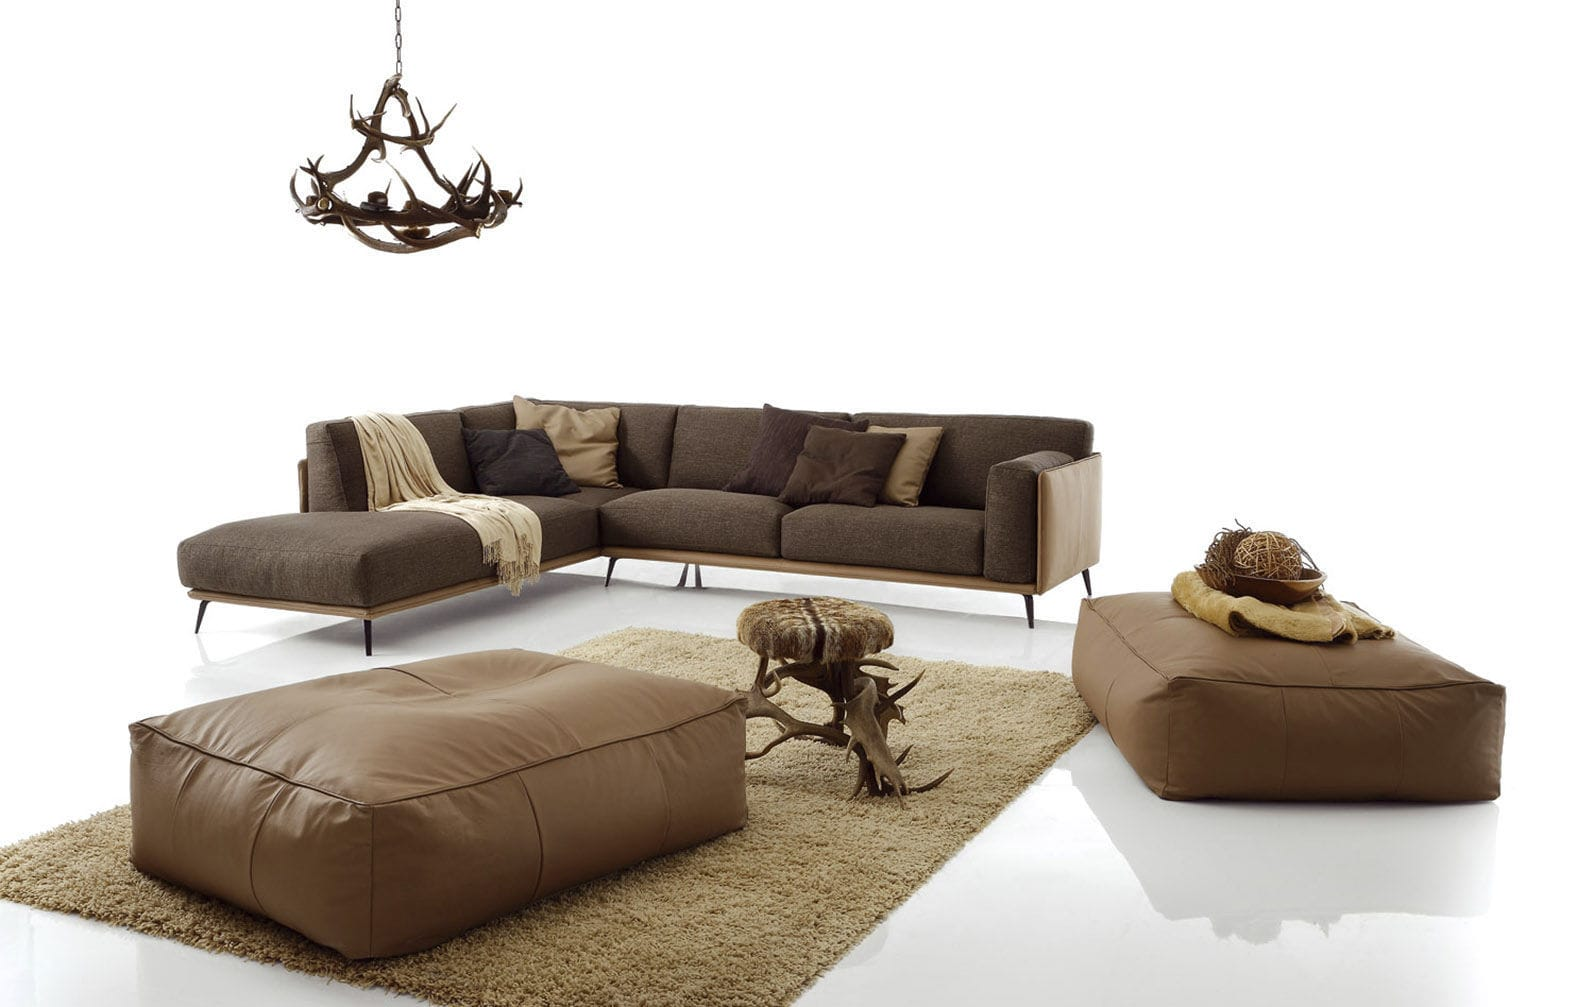 Corner Sofa Contemporary Leather Synthetic Kris Mix Low By Spessotto Agnoletto